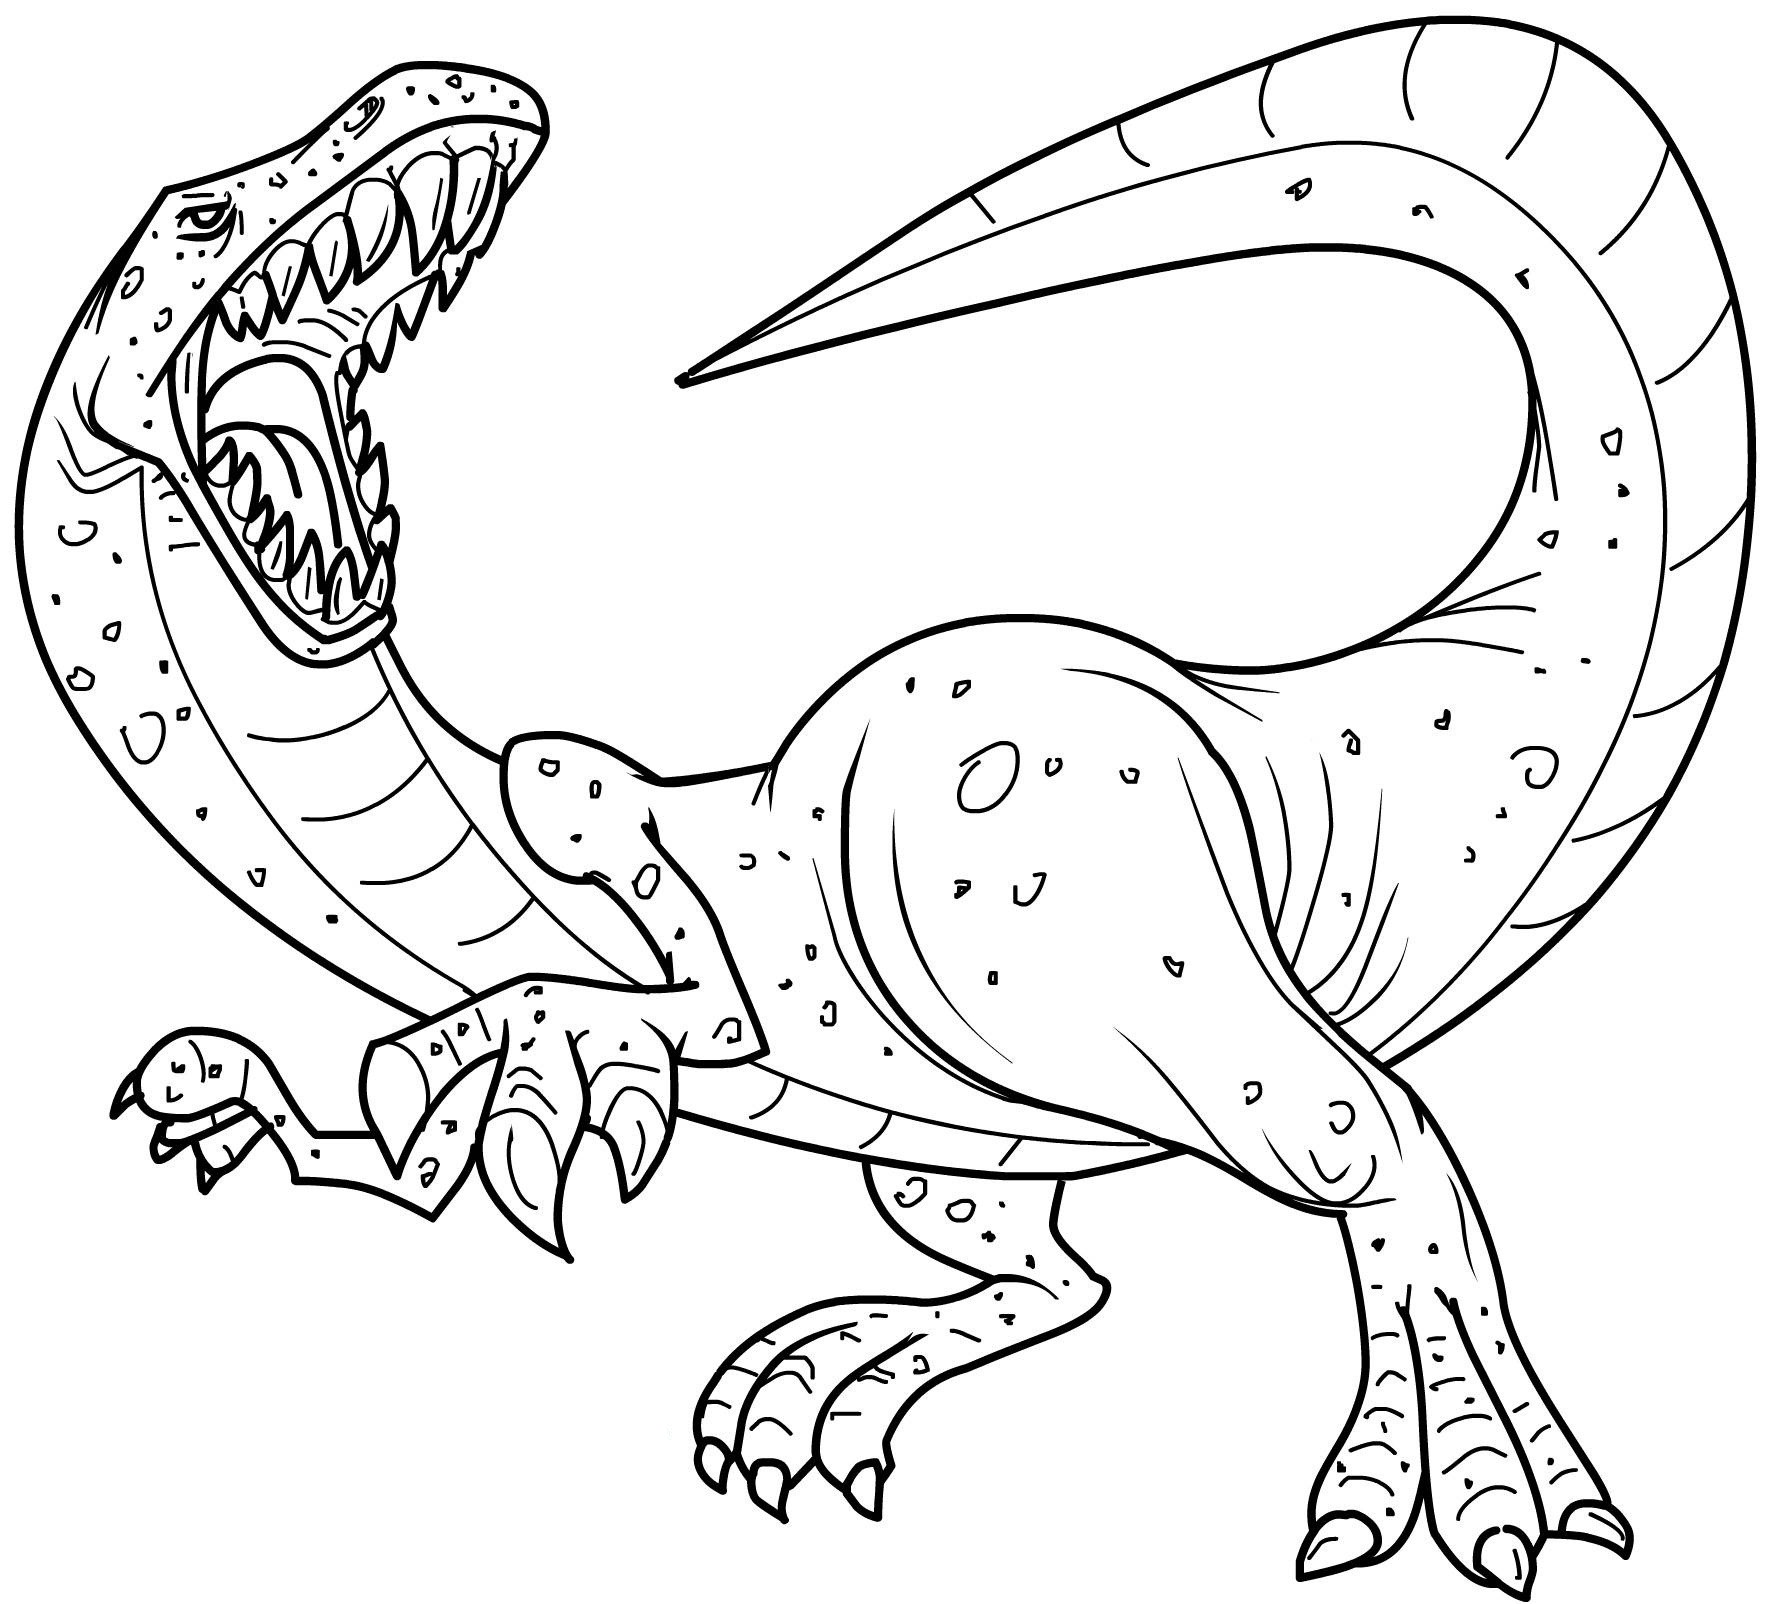 dinosaur pages dinosaur coloring pages to download and print for free dinosaur pages